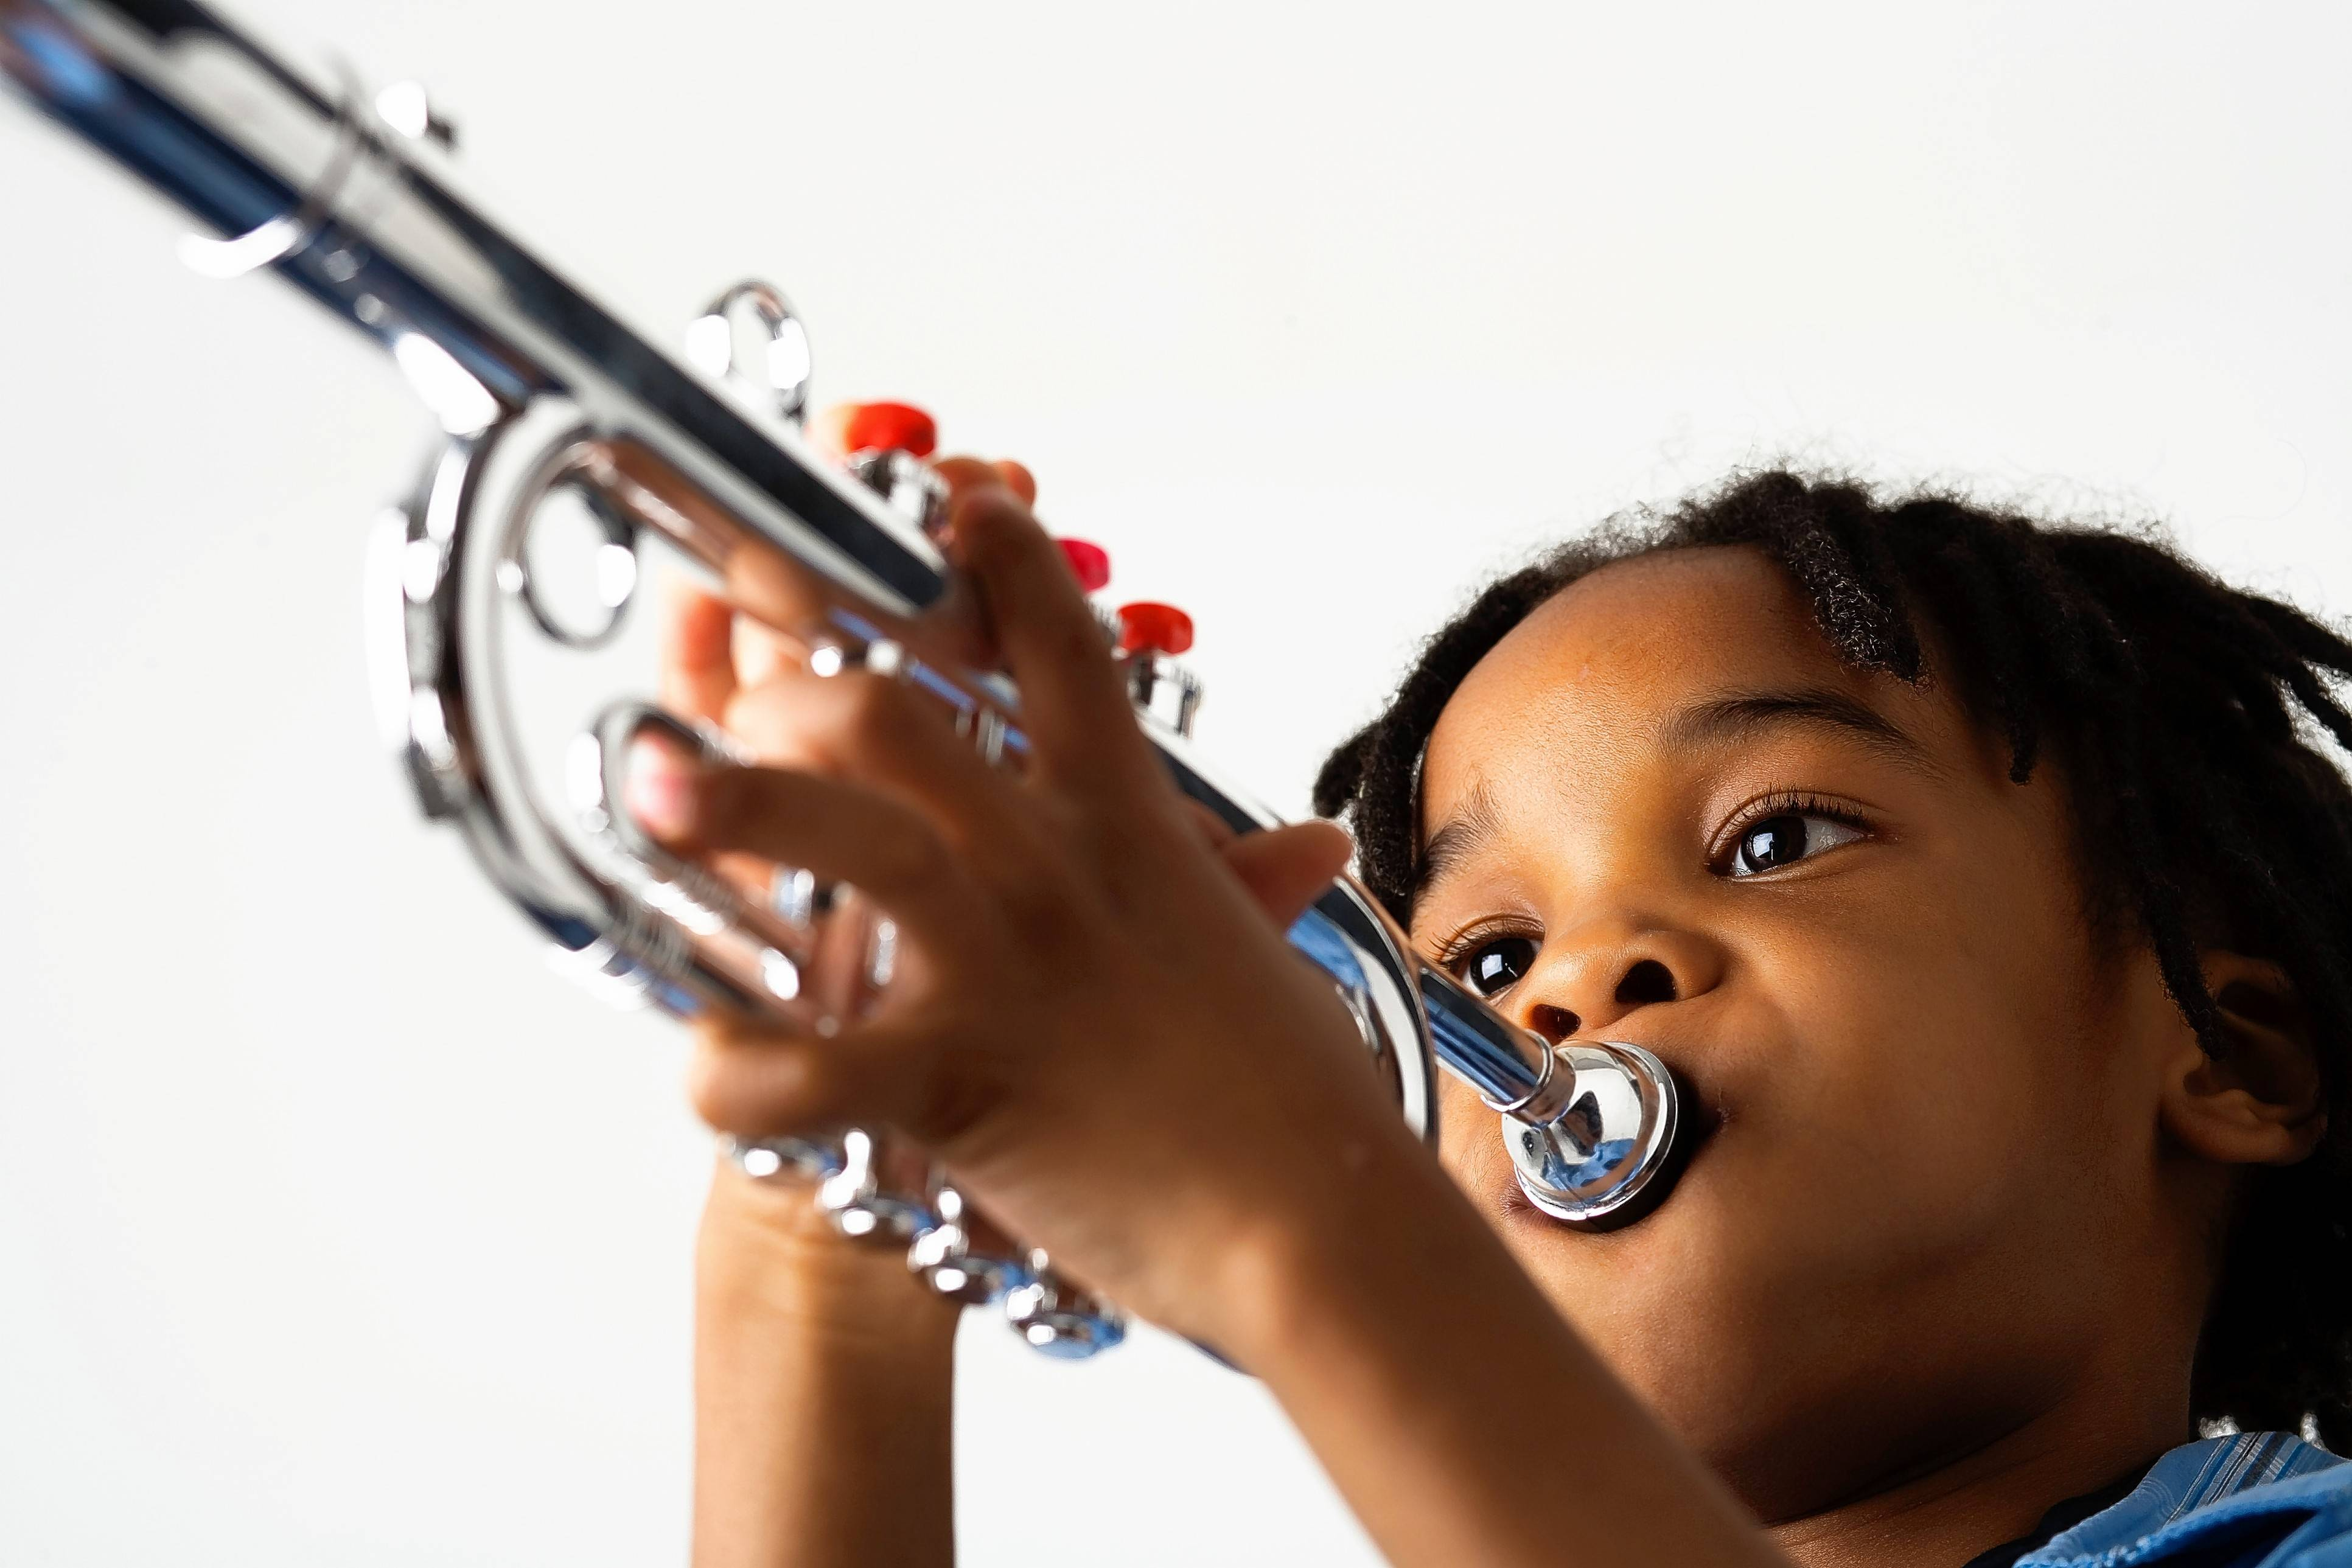 The Community Unit District 300 Foundation for Educational Excellence is seeking donations of gently used musical instruments for students in the district who are interested in learning to play with their school's band or orchestra.